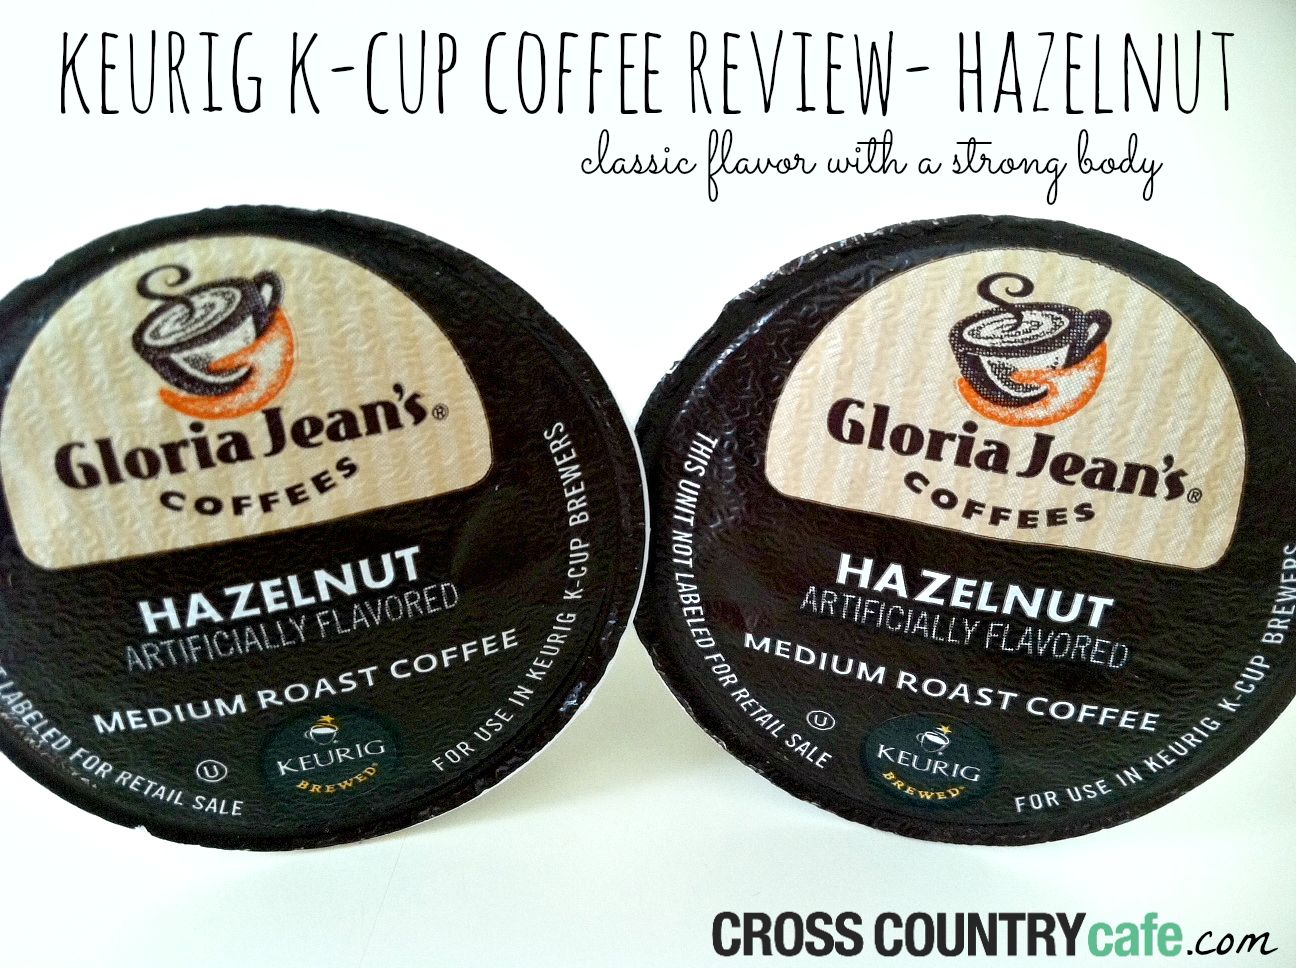 Gloria Jeans does flavored coffee best (in my humble opinion), read my review of their delicious Hazelnut K-cups here.